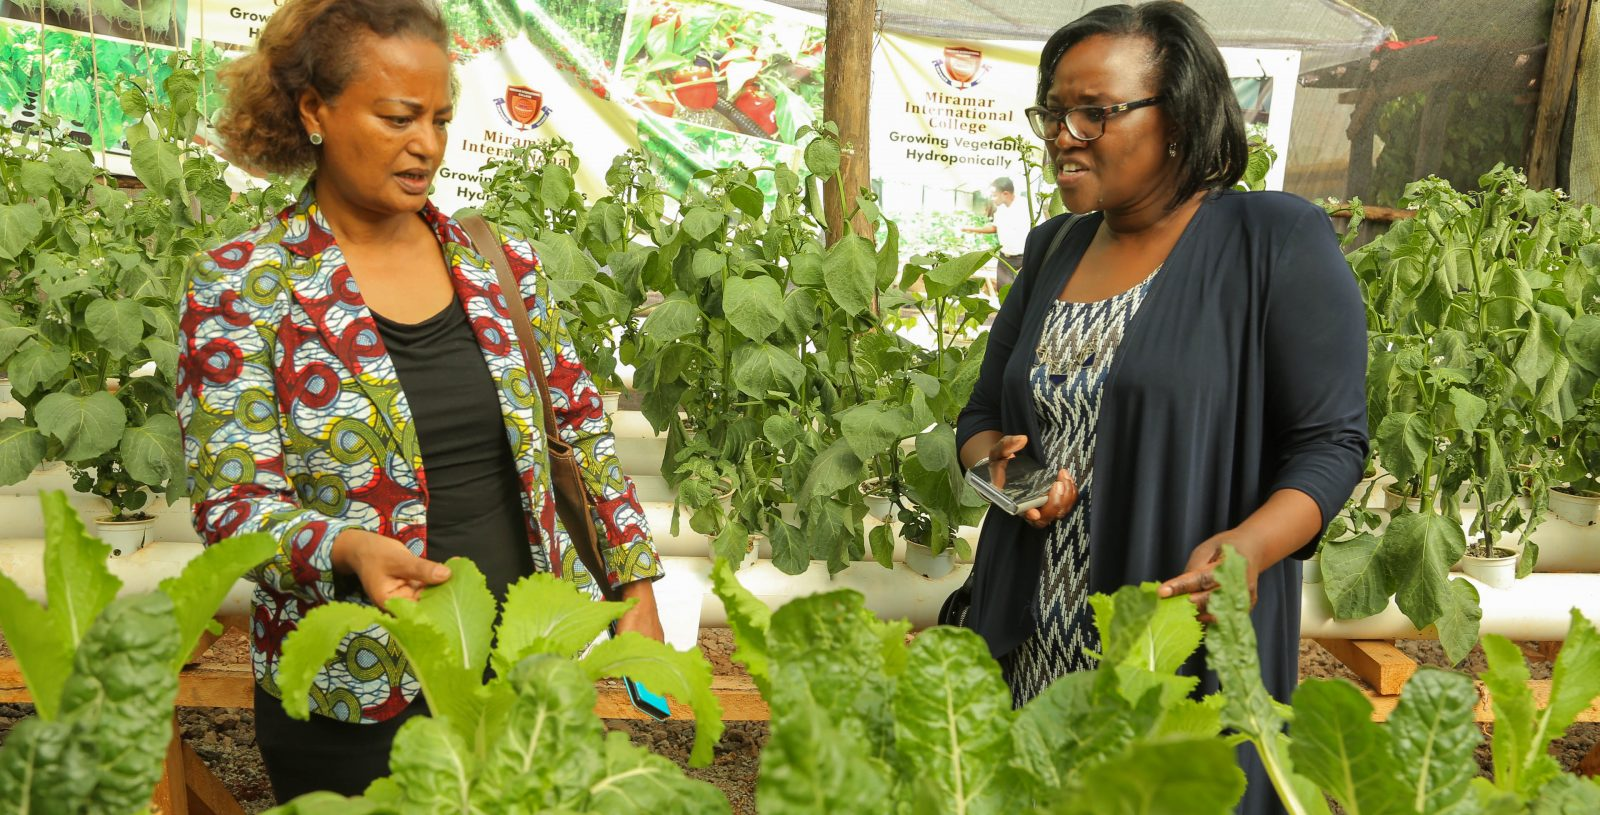 KCB Foundation and GIZ Boost Support for Hydroponic Farming